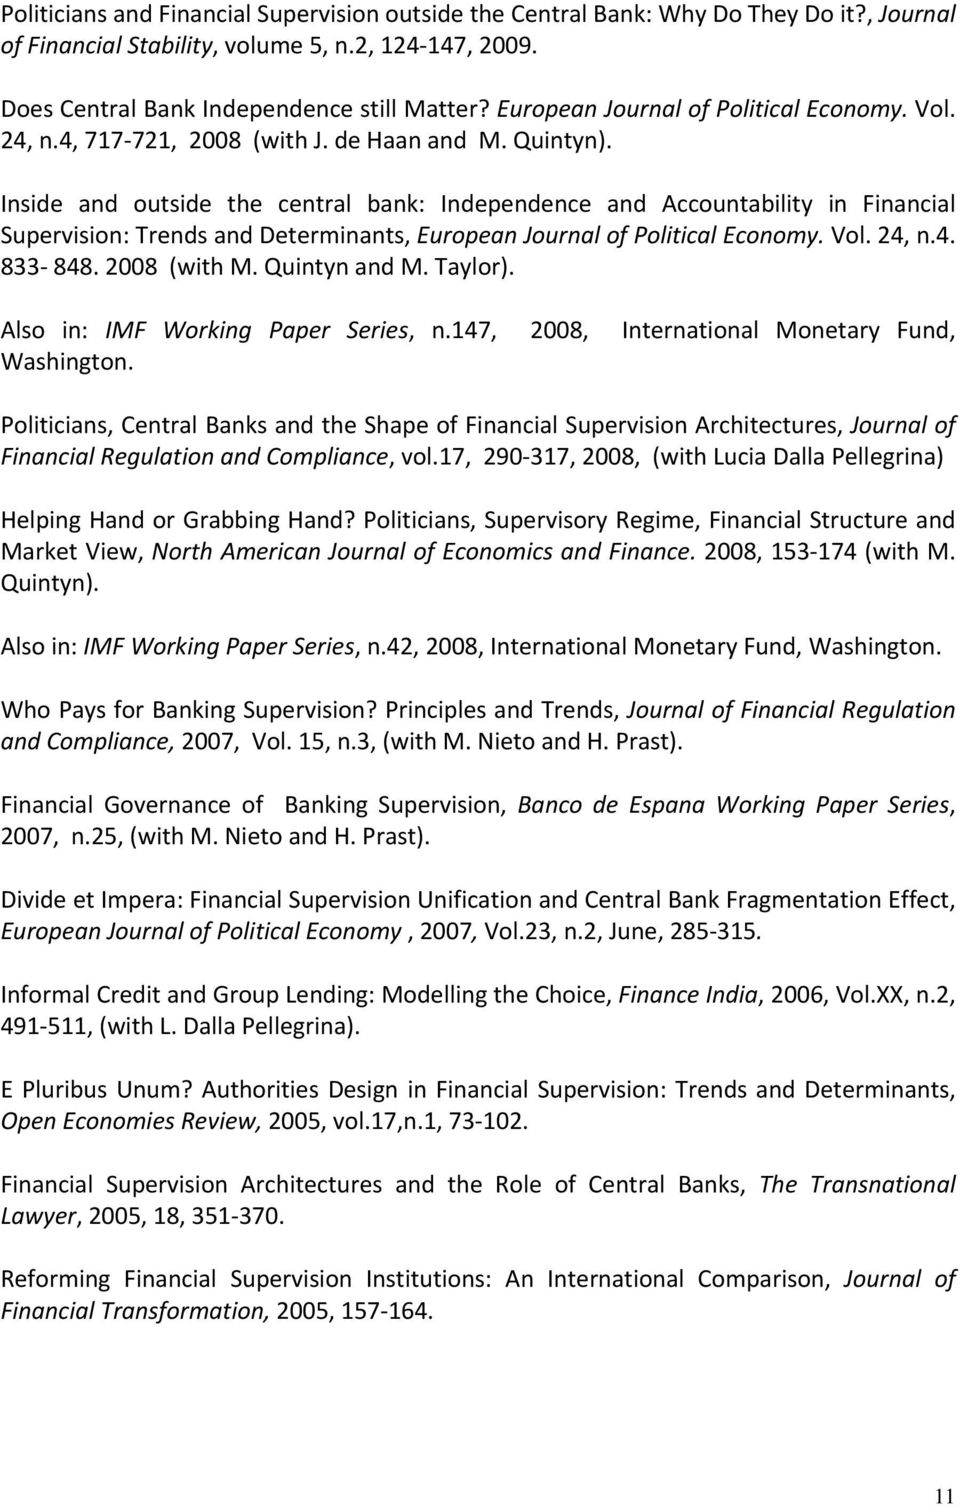 43) Inside and outside the central bank: Independence and Accountability in Financial Supervision: Trends and Determinants, European Journal of Political Economy. Vol. 24, n.4. 833 848. 2008 (with M.